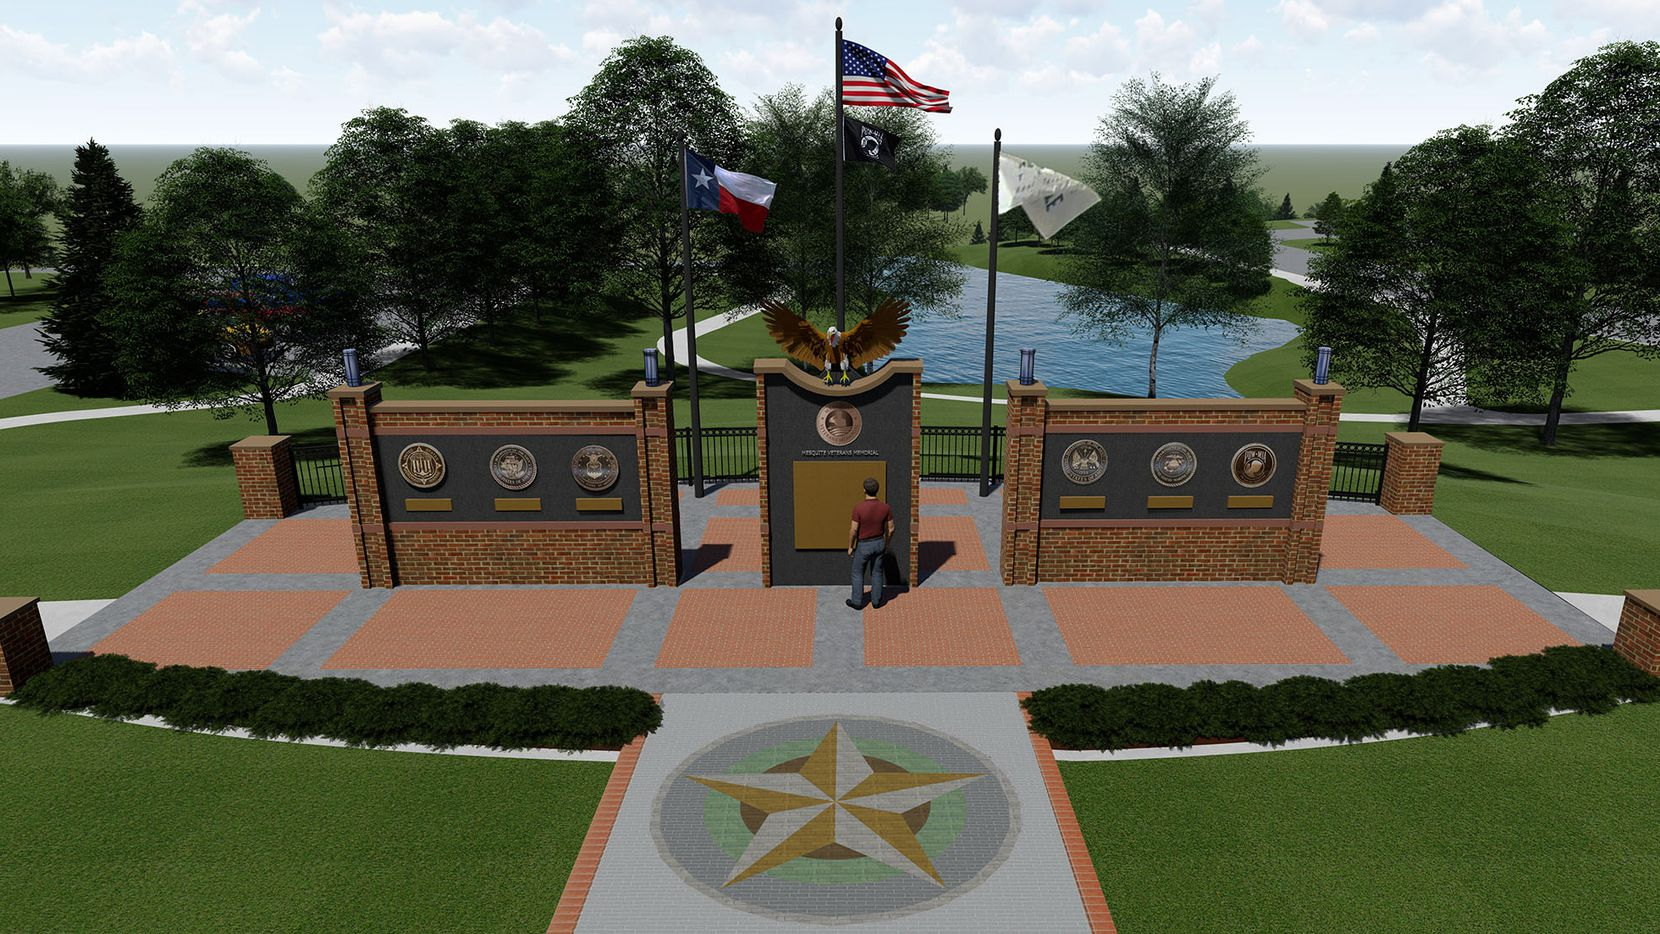 A rendering shows the planned final design for the Mesquite Veterans Memorial.